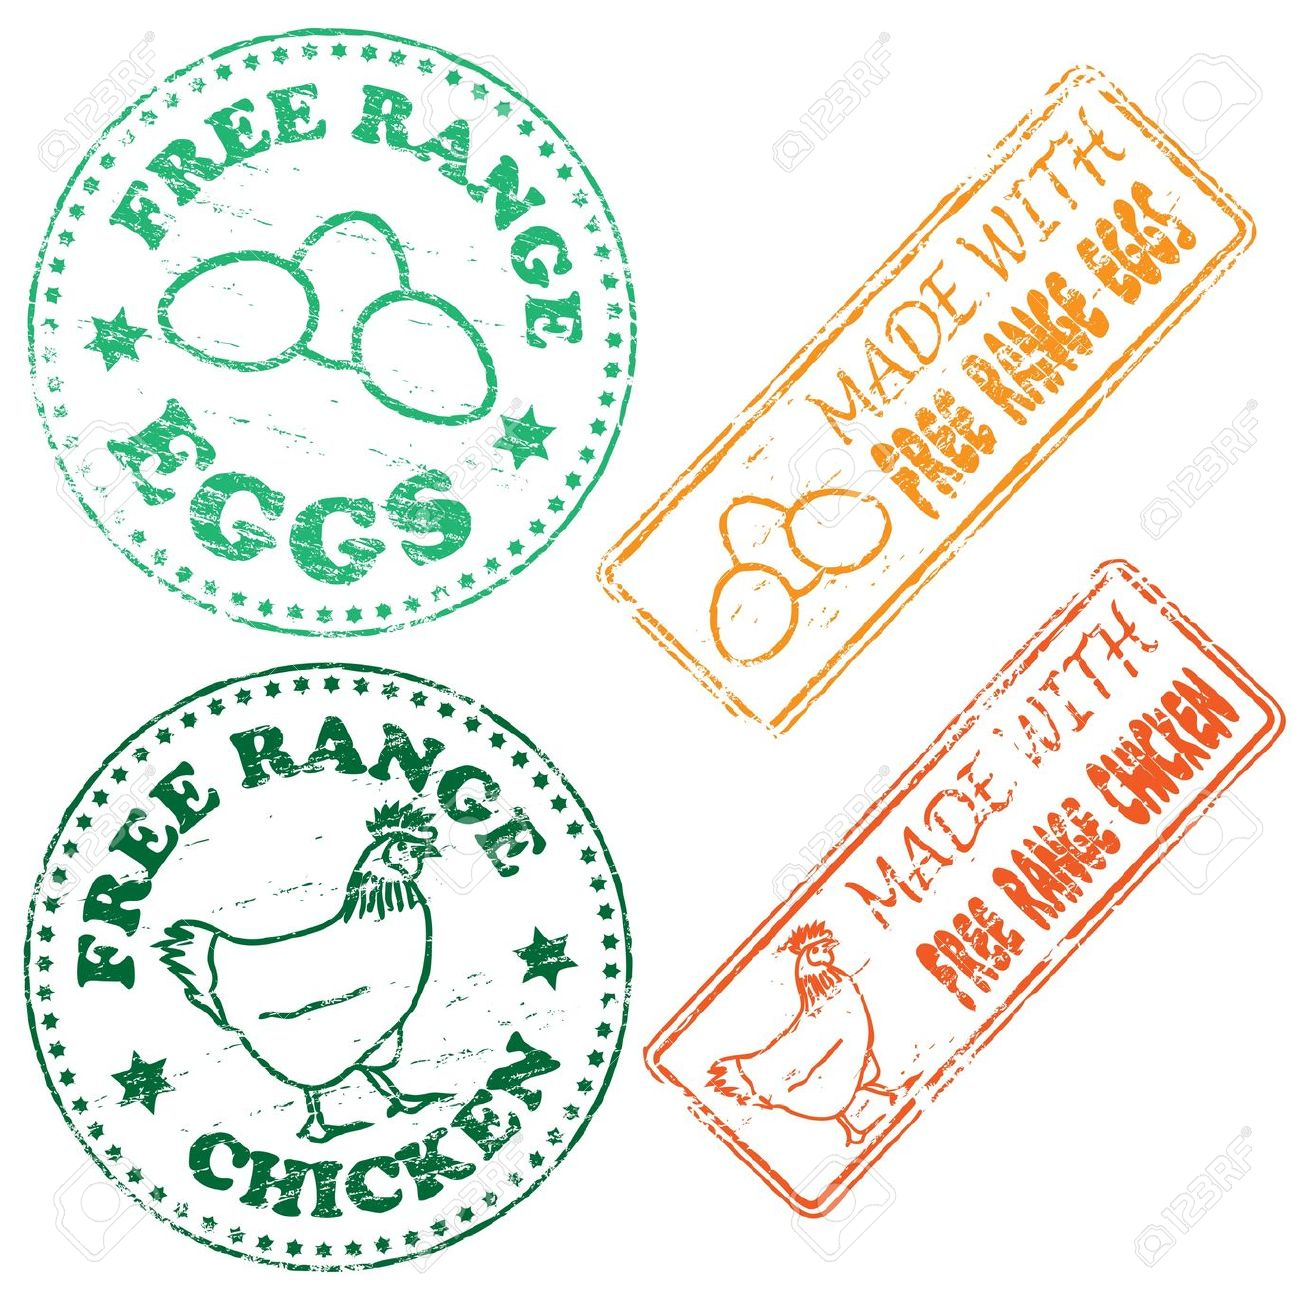 Free Range Chicken And Eggs Rubber Stamp Illustrations Royalty.